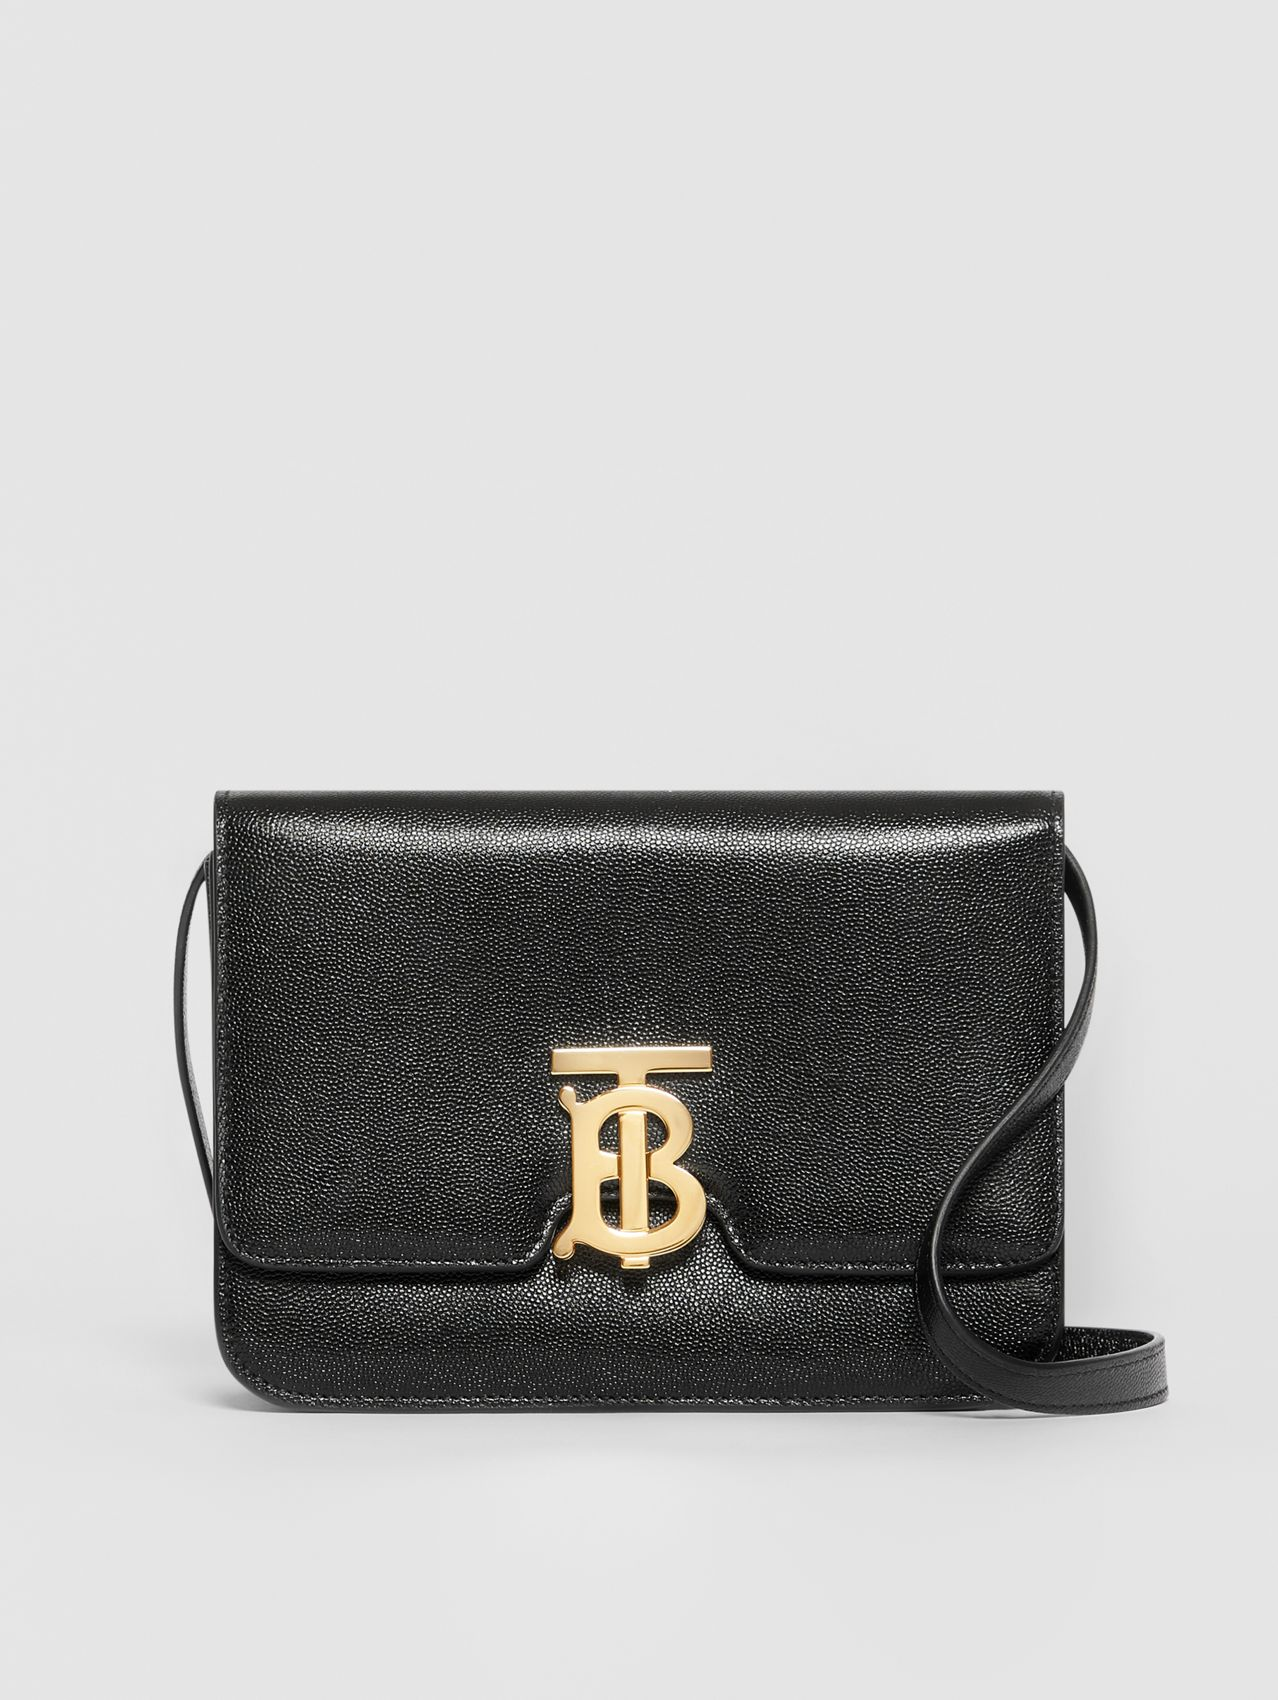 Small Grainy Leather TB Bag in Black